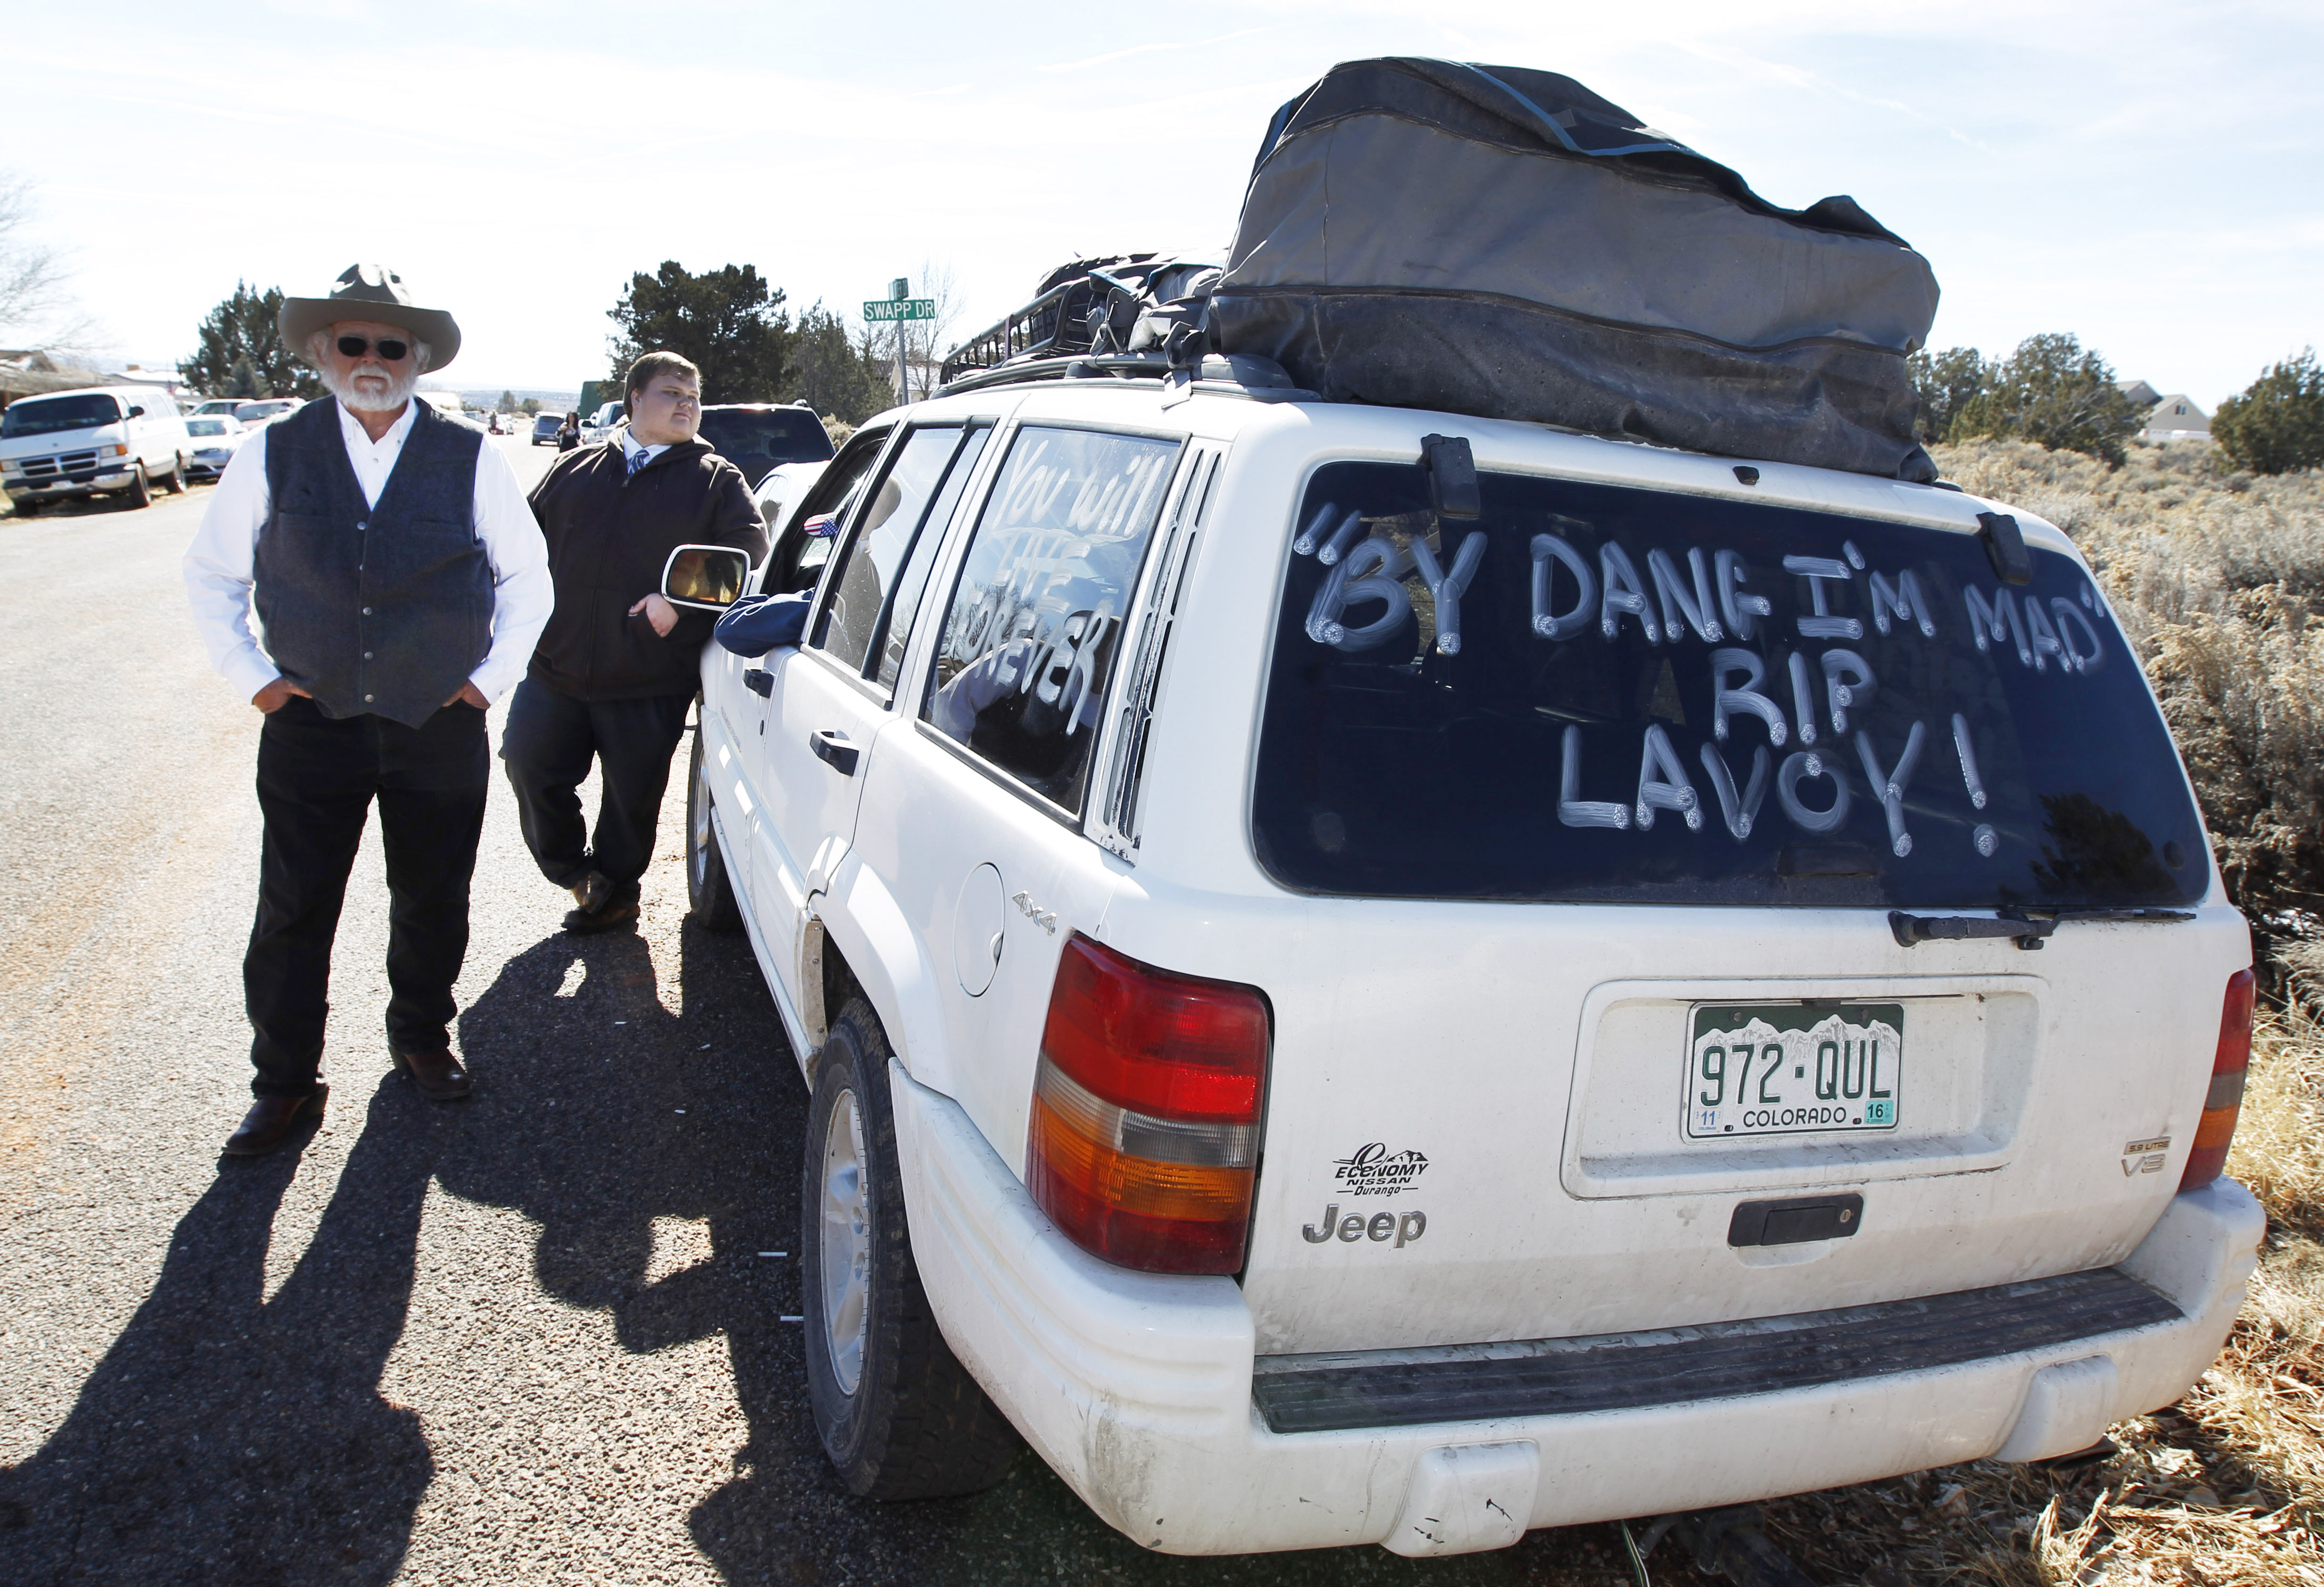 Pickup Trucks And American Flags At Funeral For Arizona Rancher Robert Lavoy Finicum Spokesman Of Oregon Standoff Cbs News